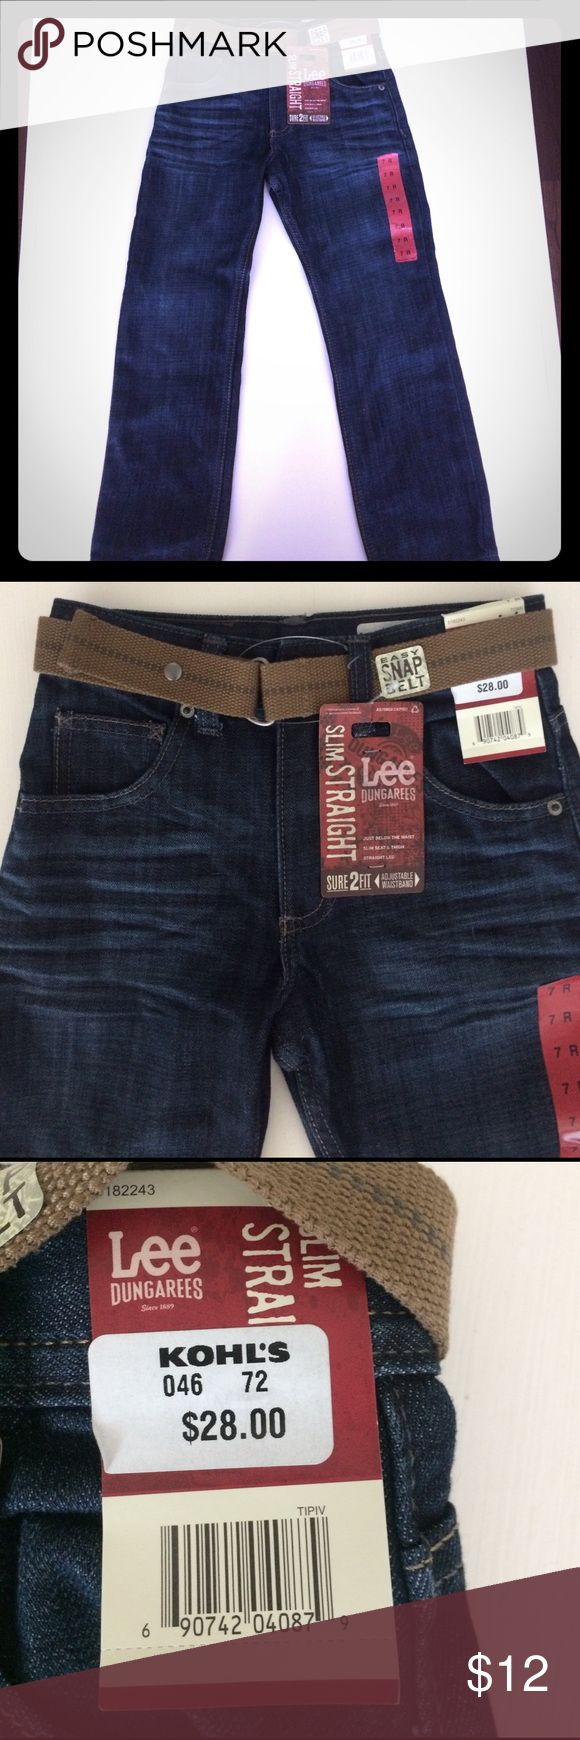 Lee Dungarees boys jeans New with tags, never worn. Boys size 7 with removable easy snap belt Lee Bottoms Jeans